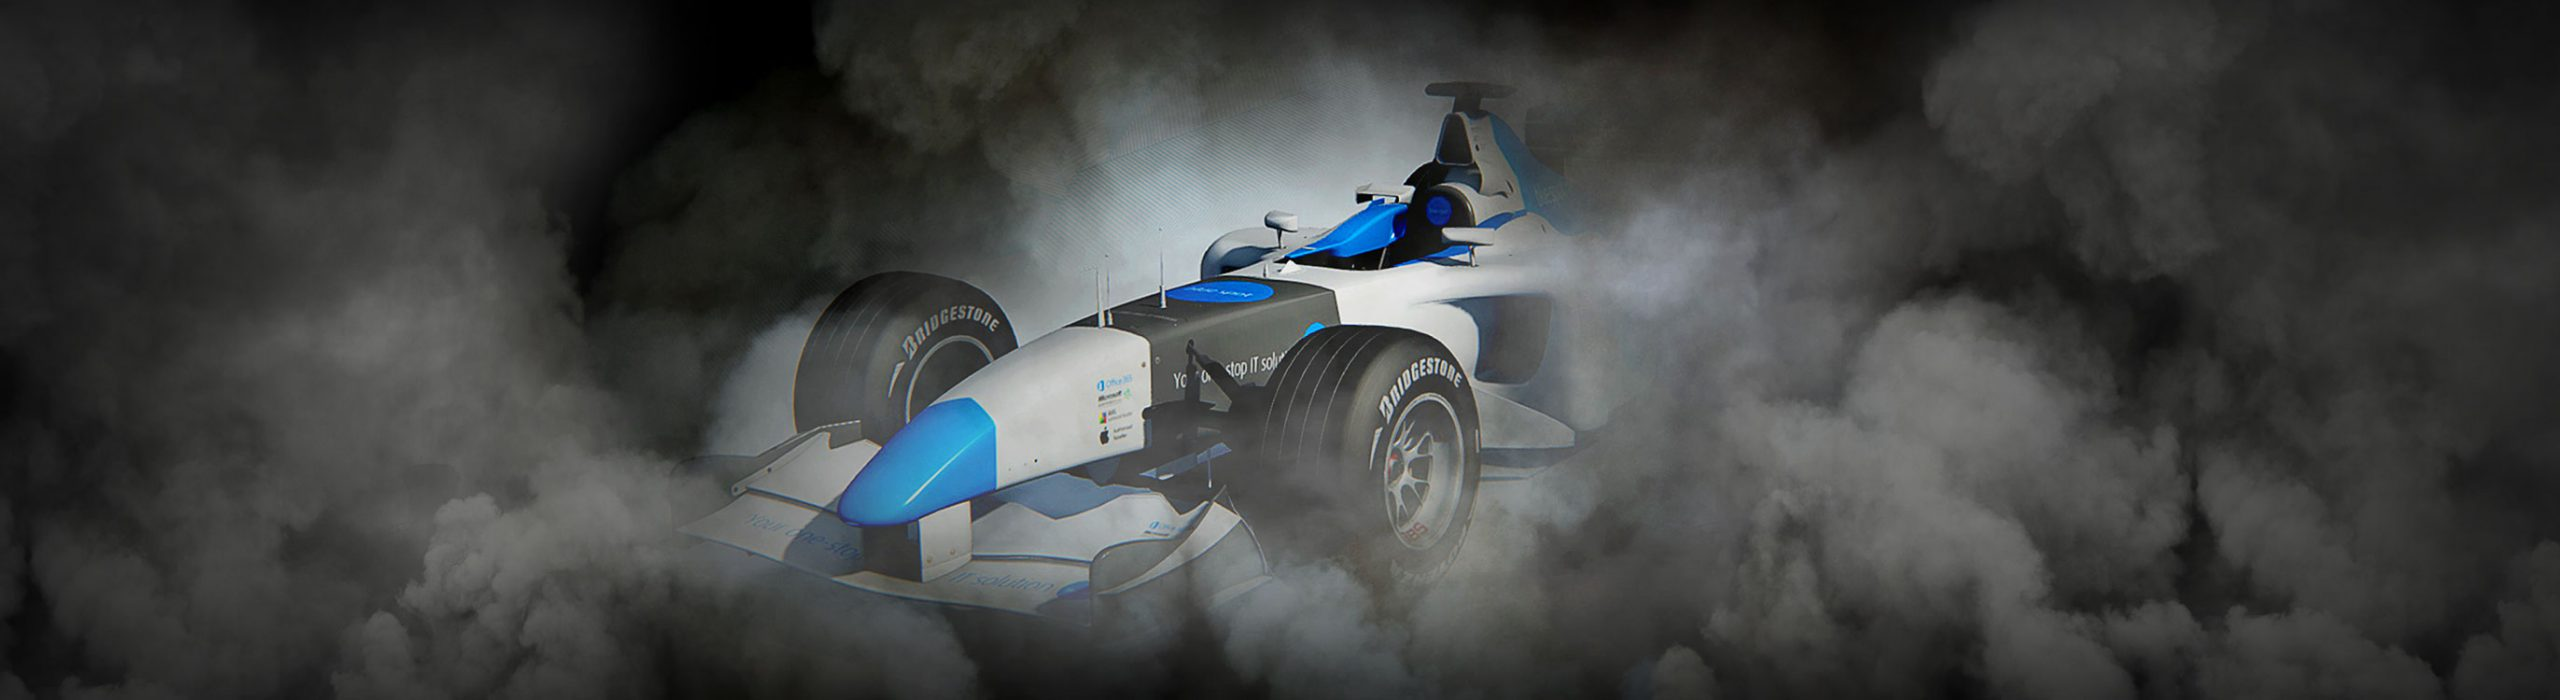 Blue Spot F1 Simulator